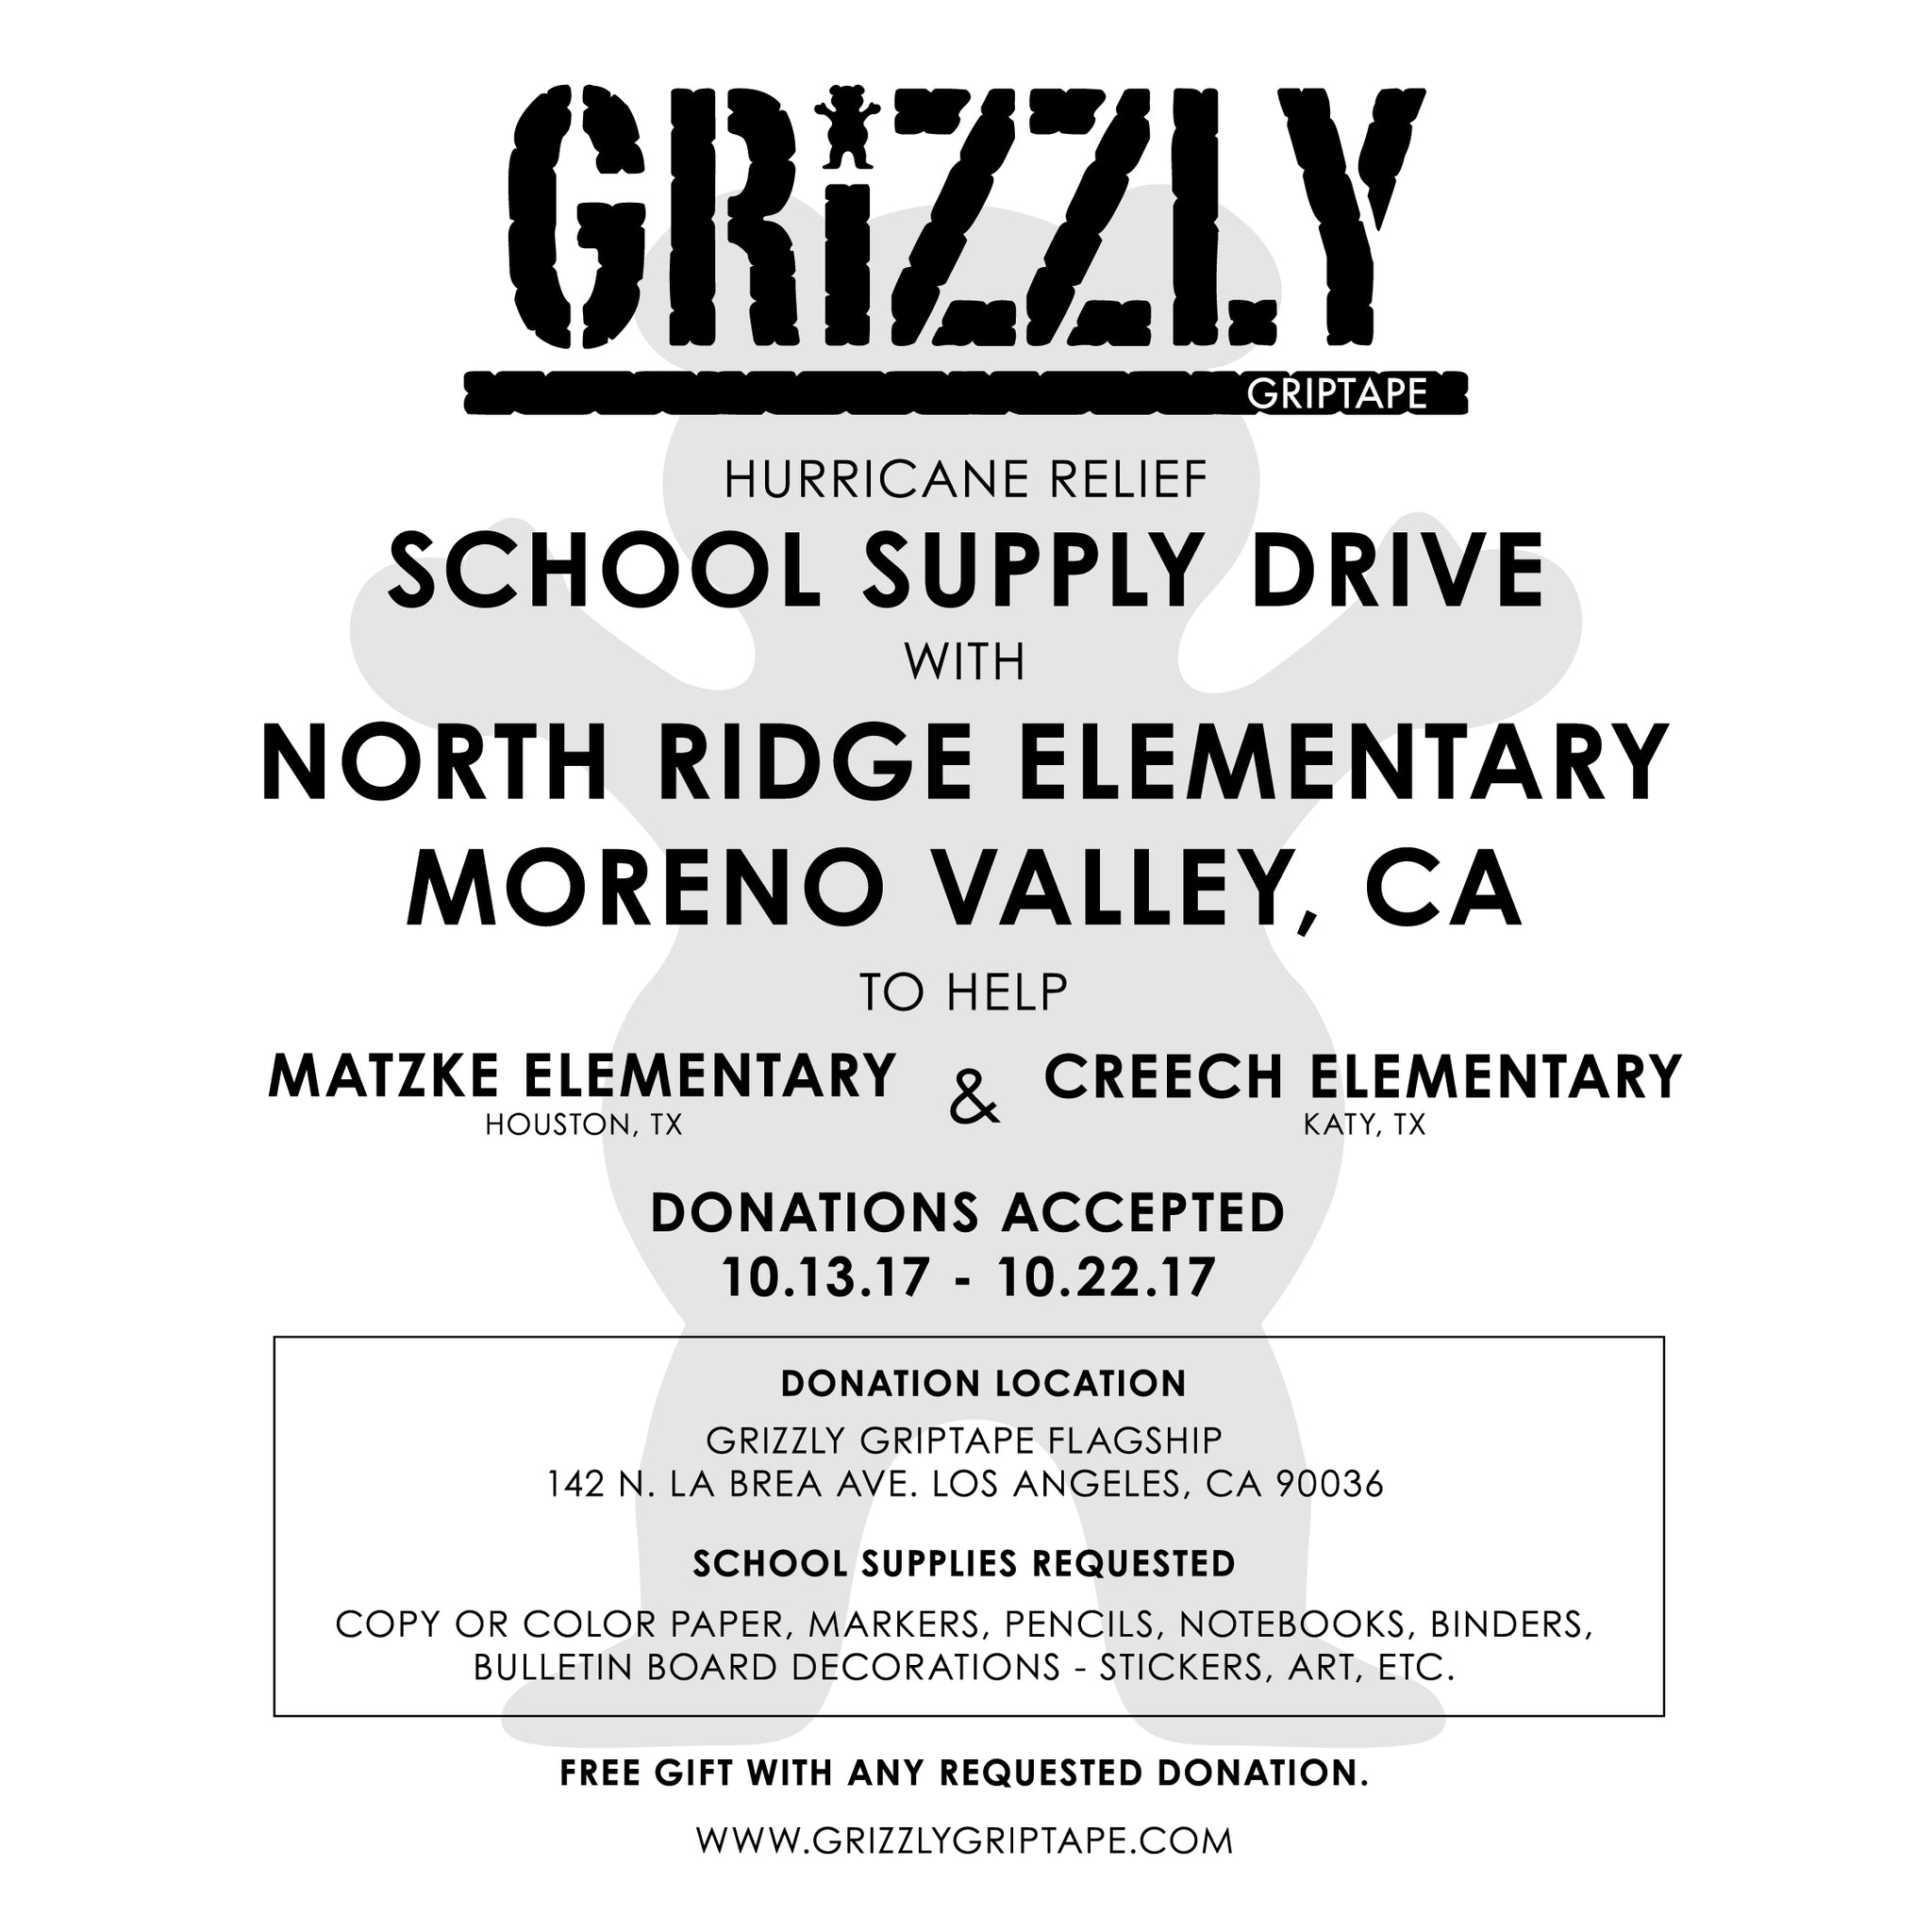 Grizzly School Supply Drive For Hurricane Relief